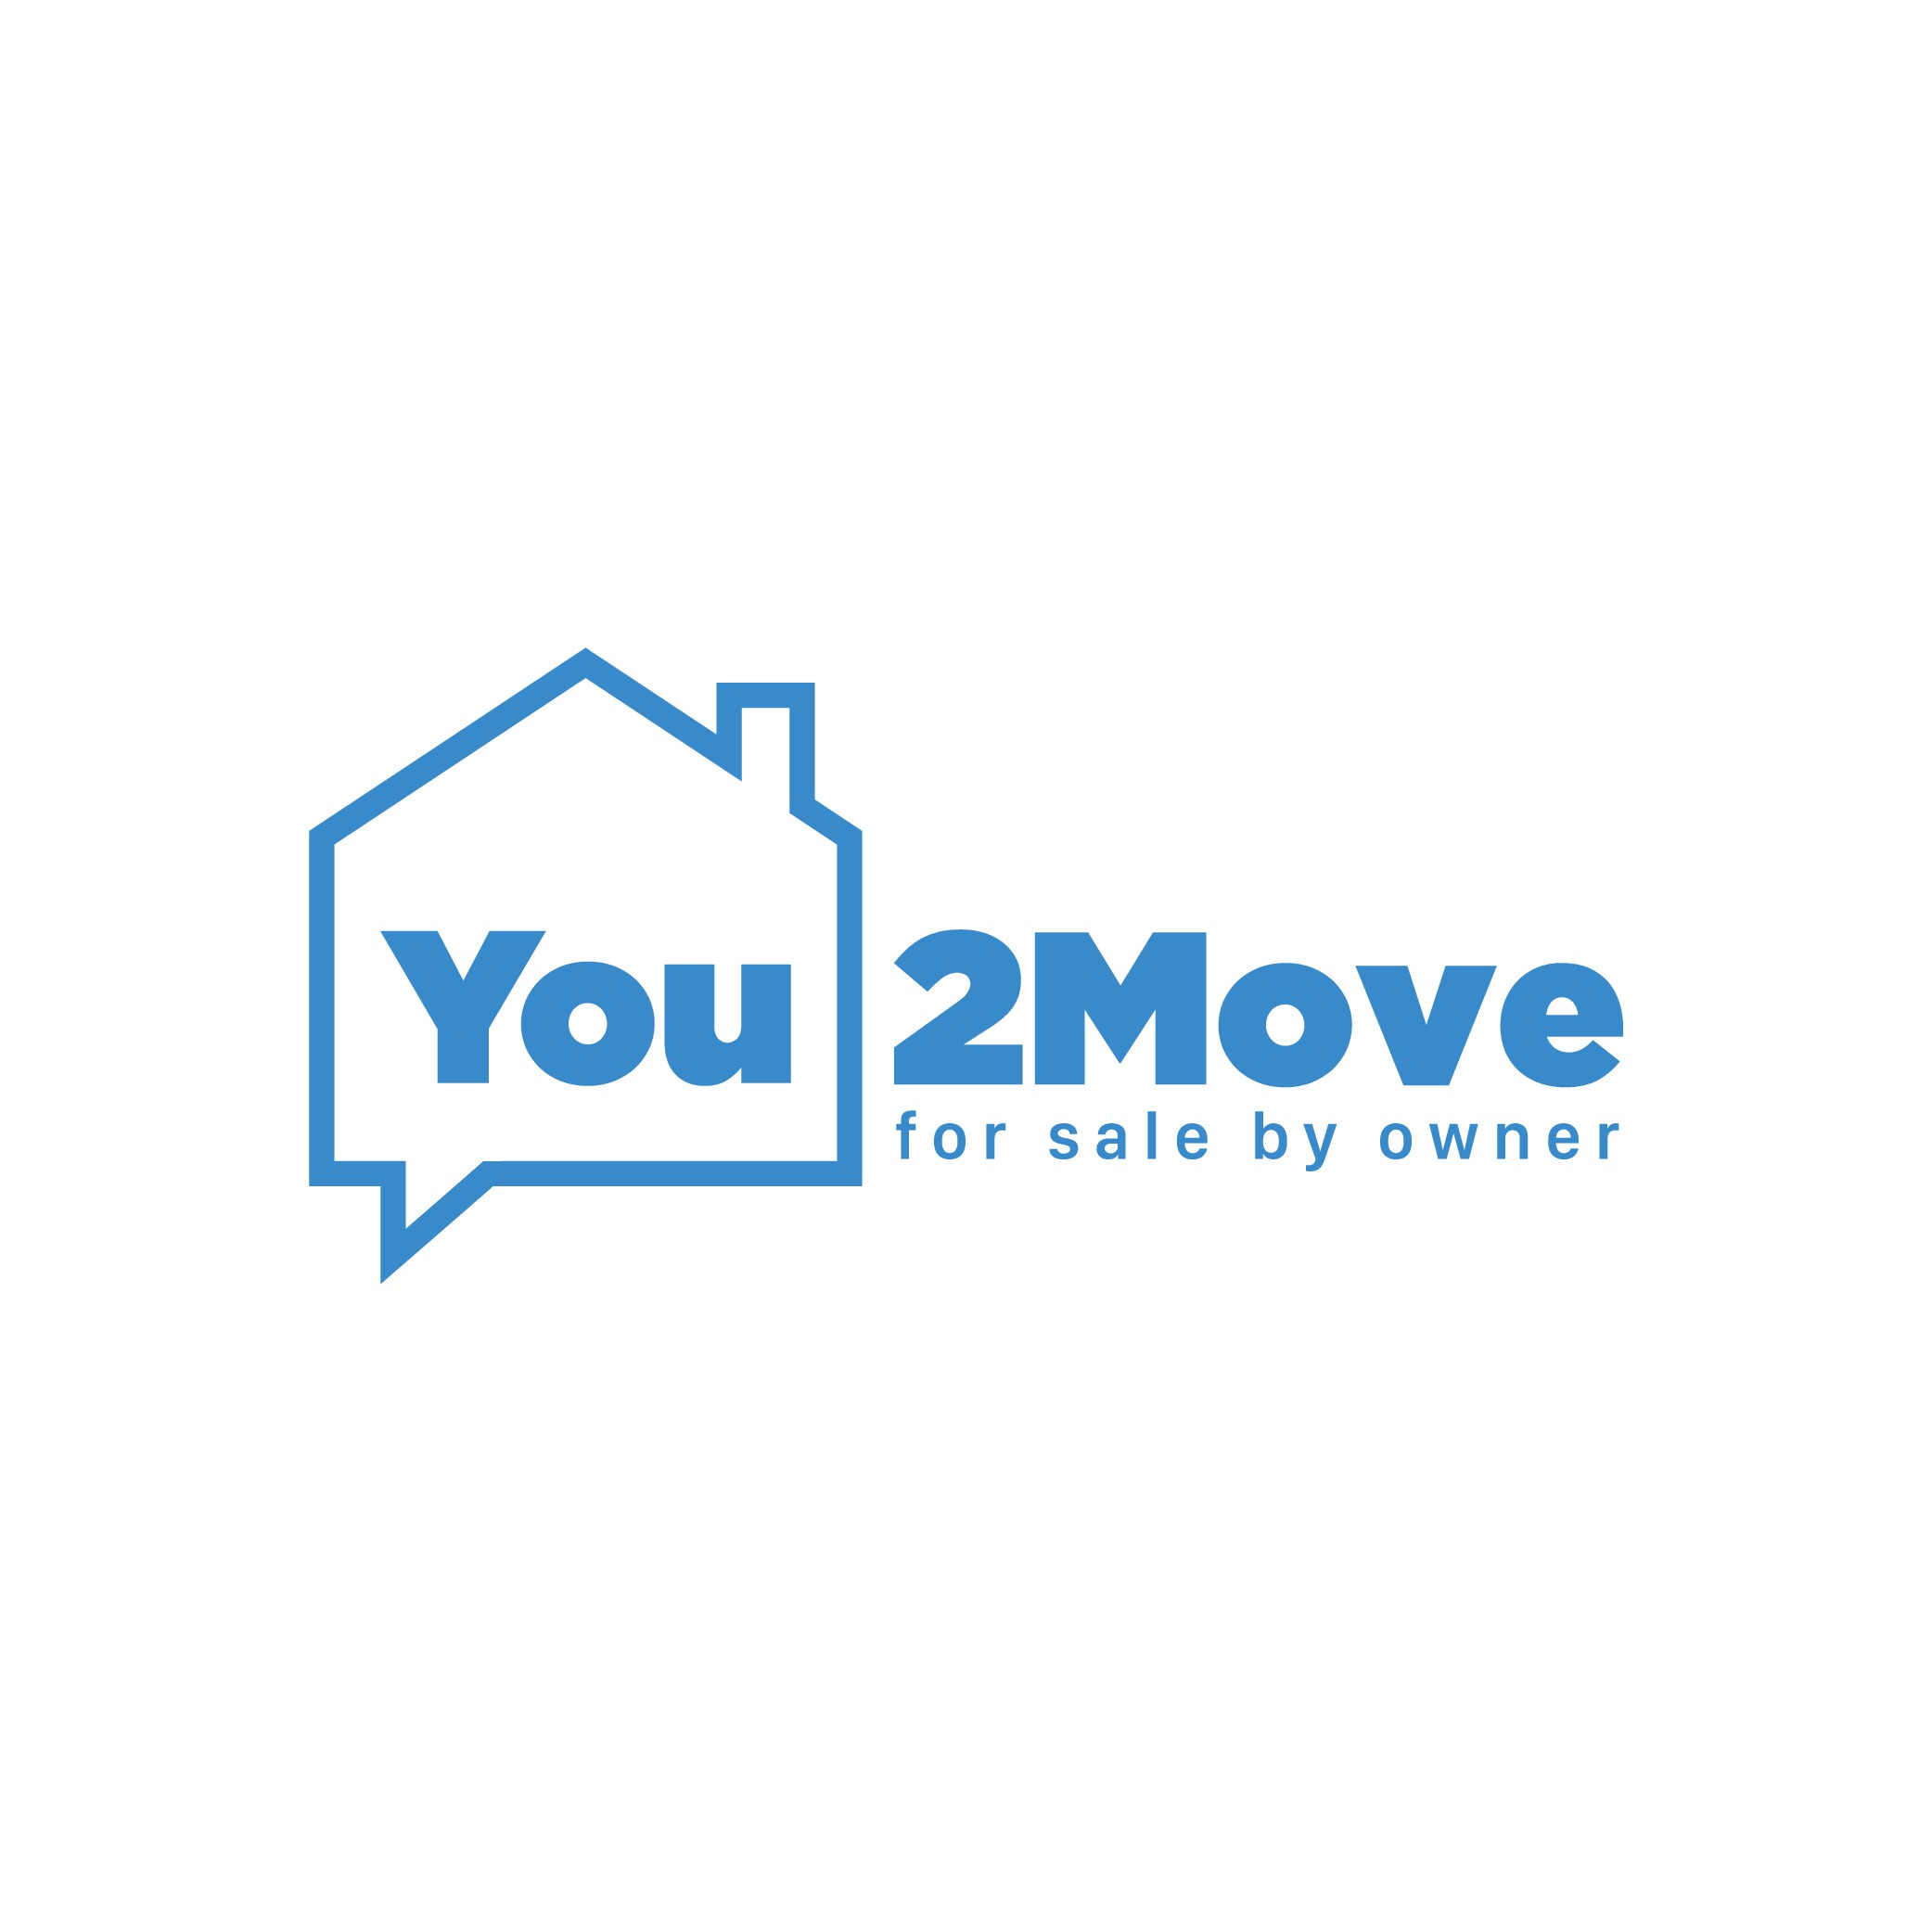 Design a logo & social media for disruptive real estate sales company